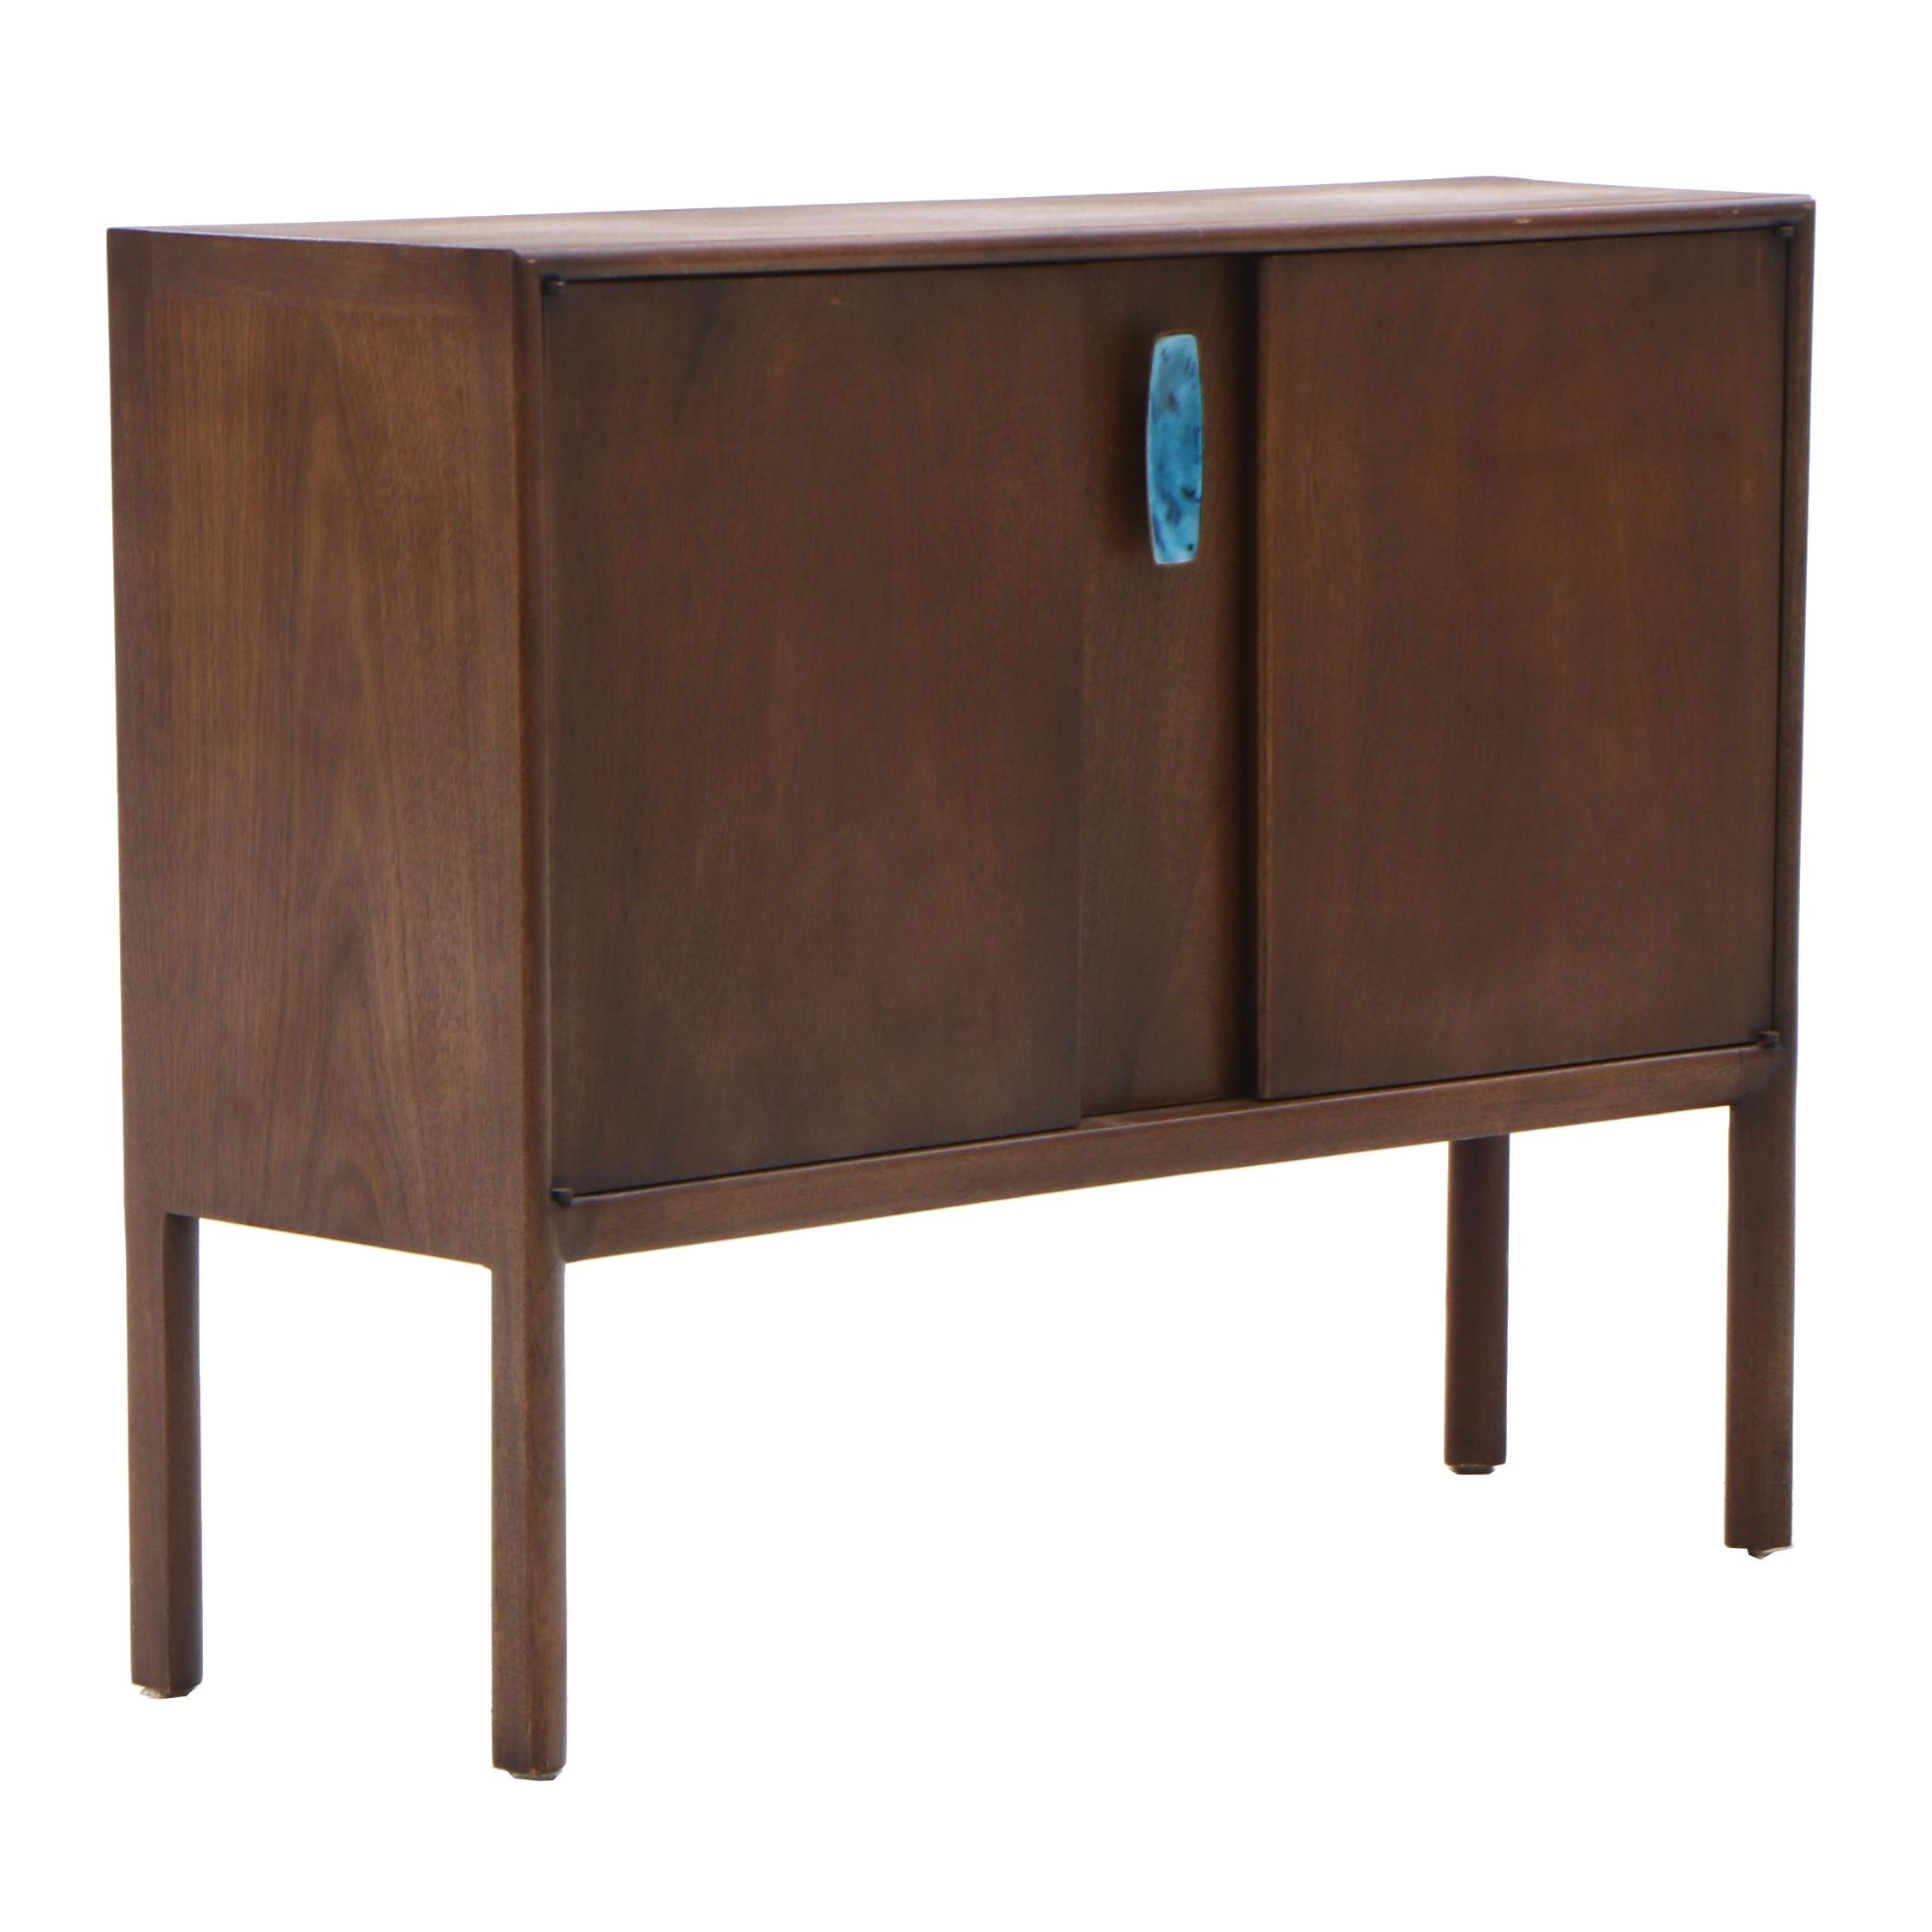 Mount Airy Furniture Mid Century Modern Walnut Server